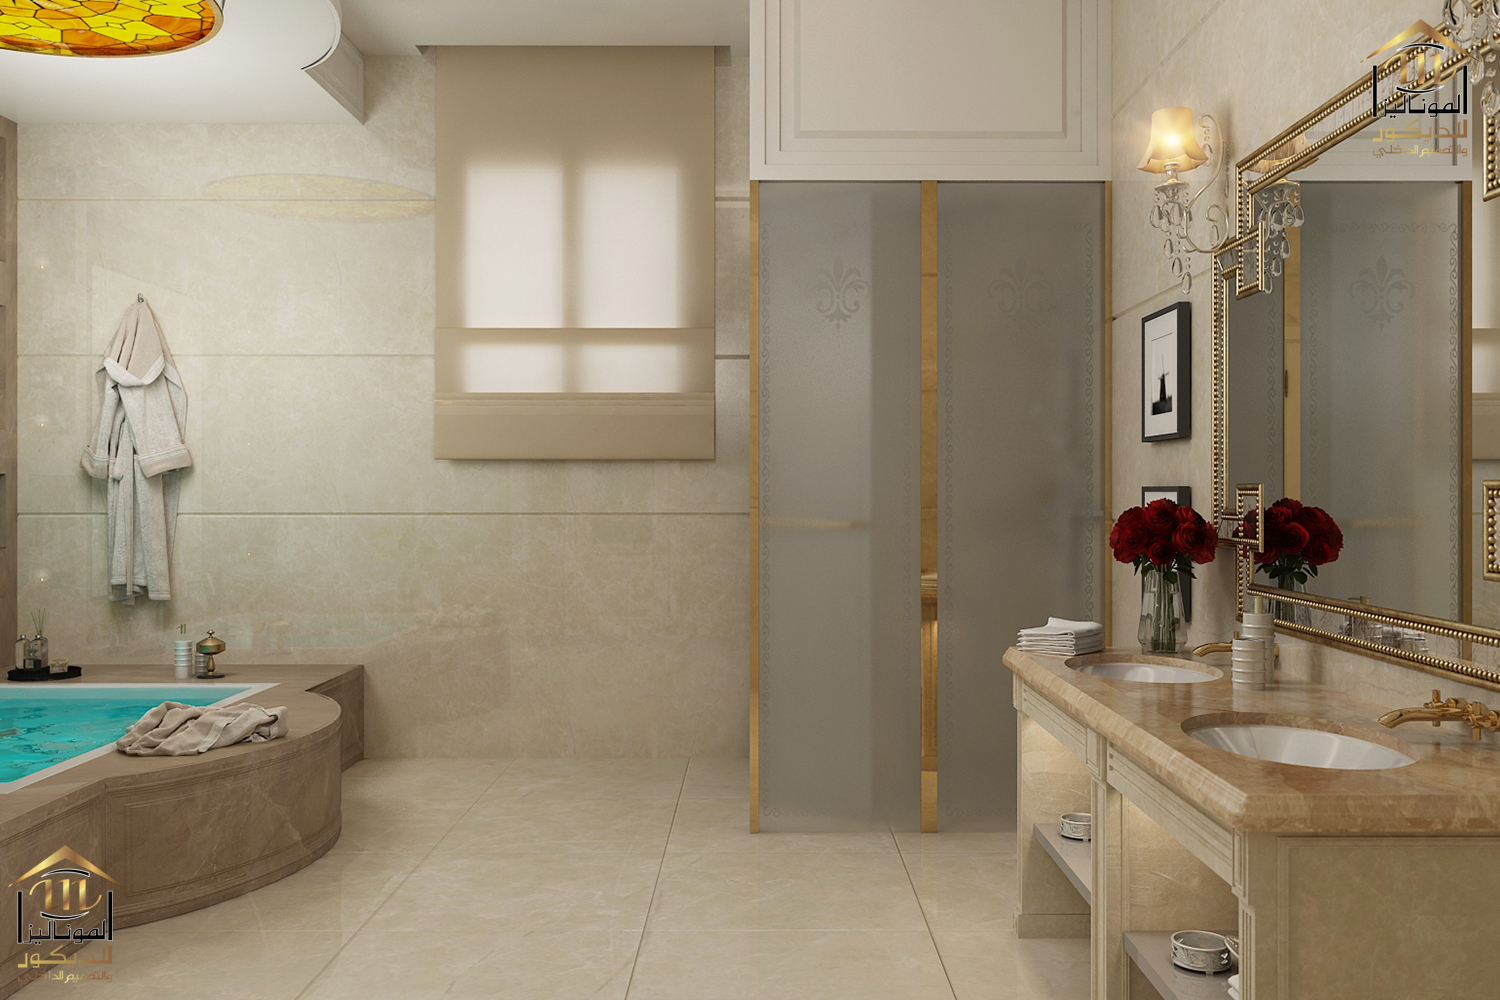 almonaliza group_decoration&interior design_bathrooms (23).jpg